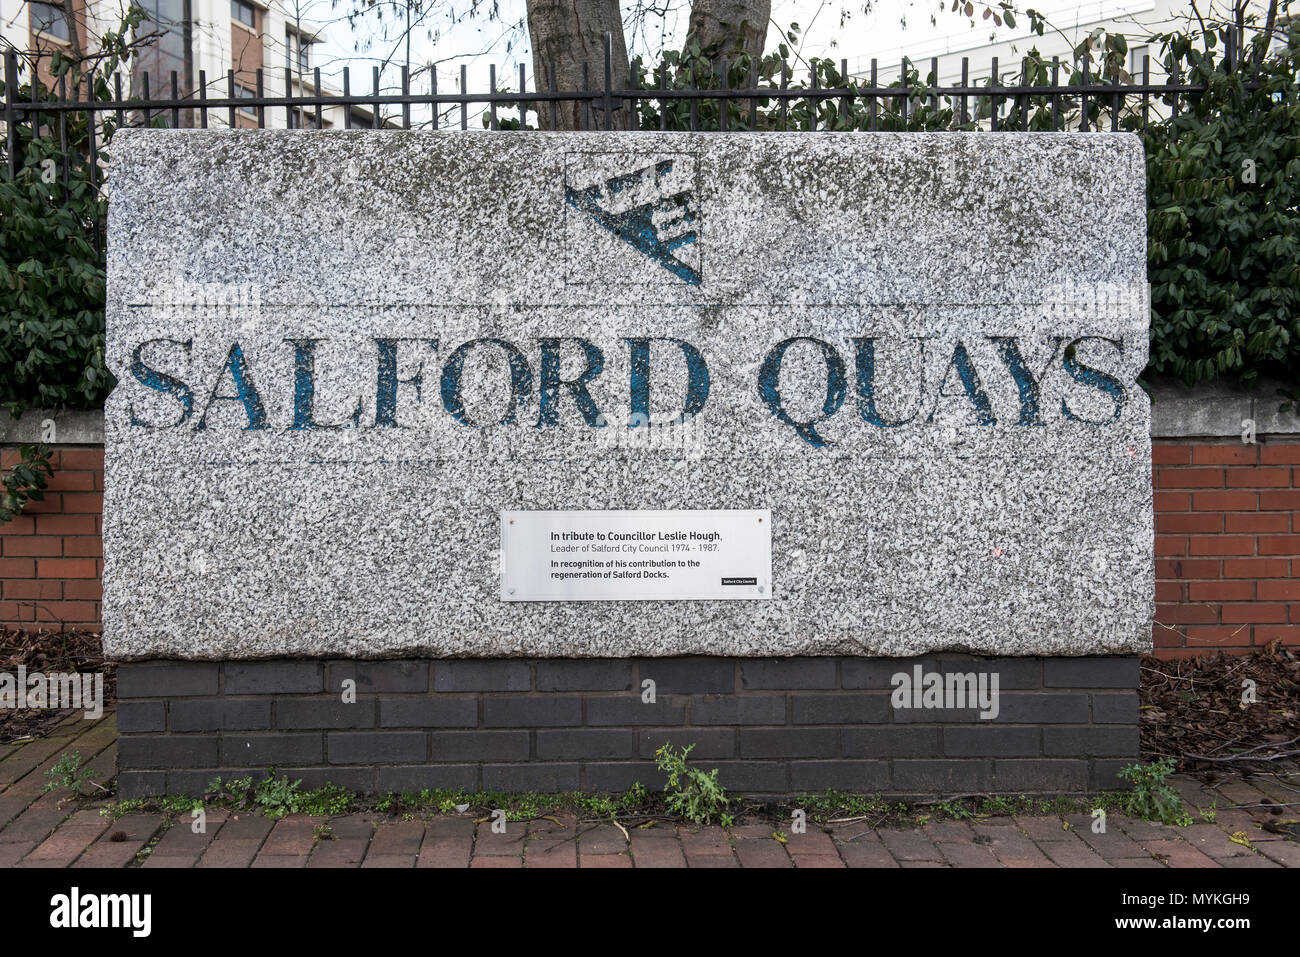 Salford Quays, Manchester - Stock Image